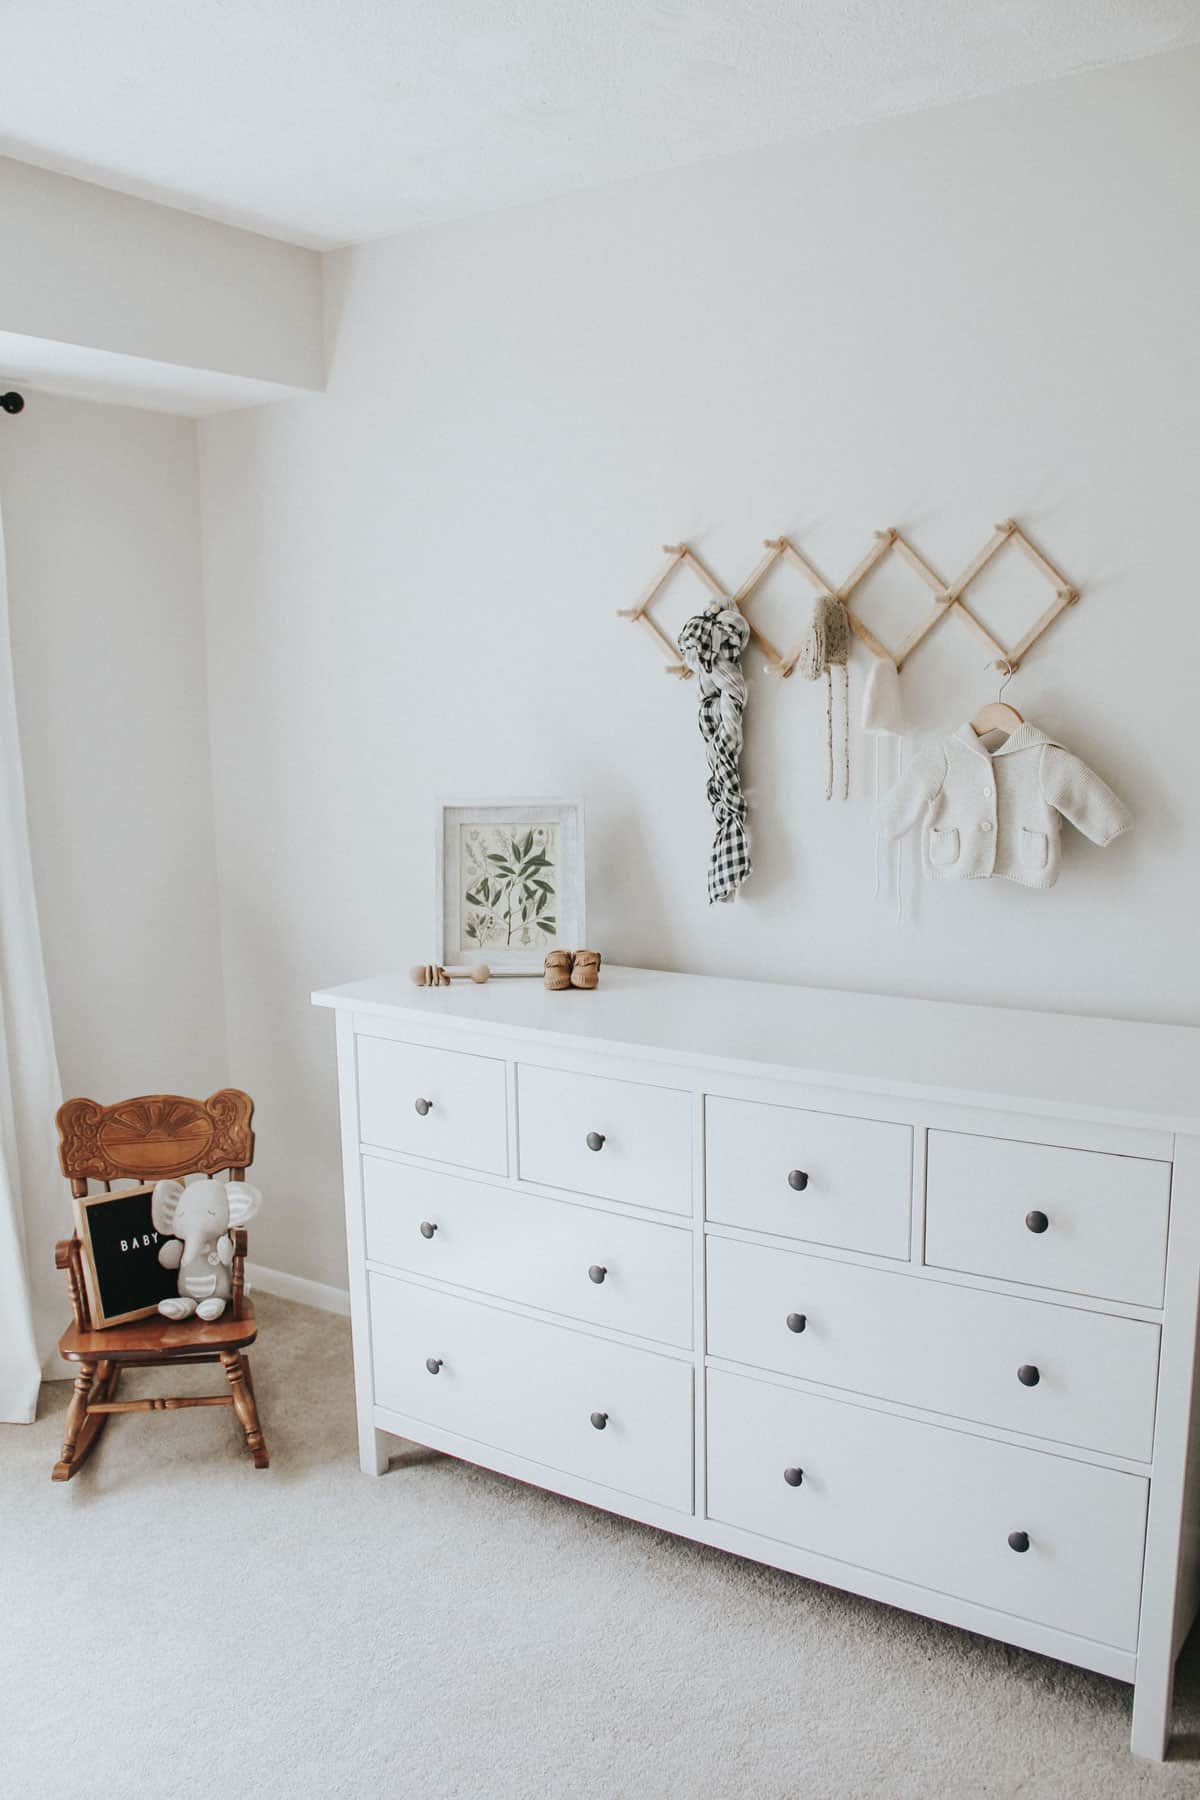 Rocking chair, white dresser, and wall rack with baby garments in a neutral baby room.